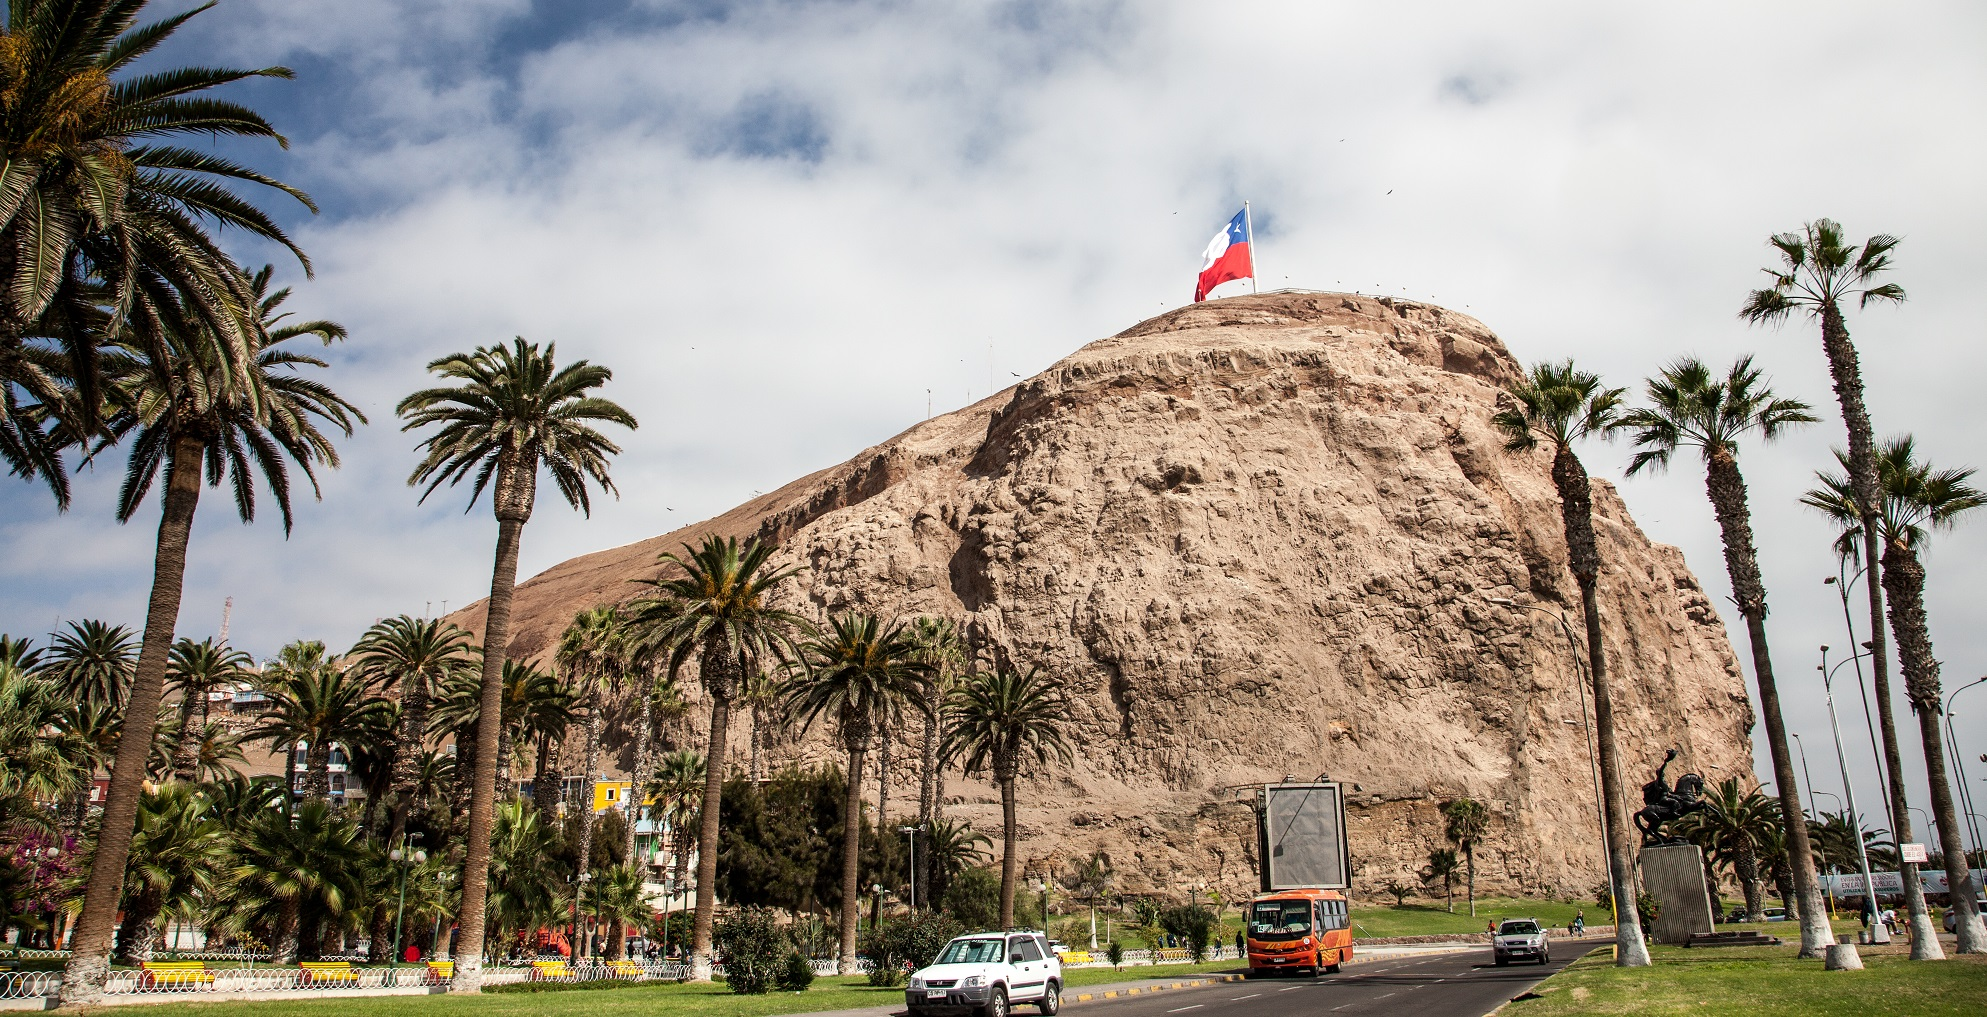 Things to do in Arica: Visit Morro de Arica